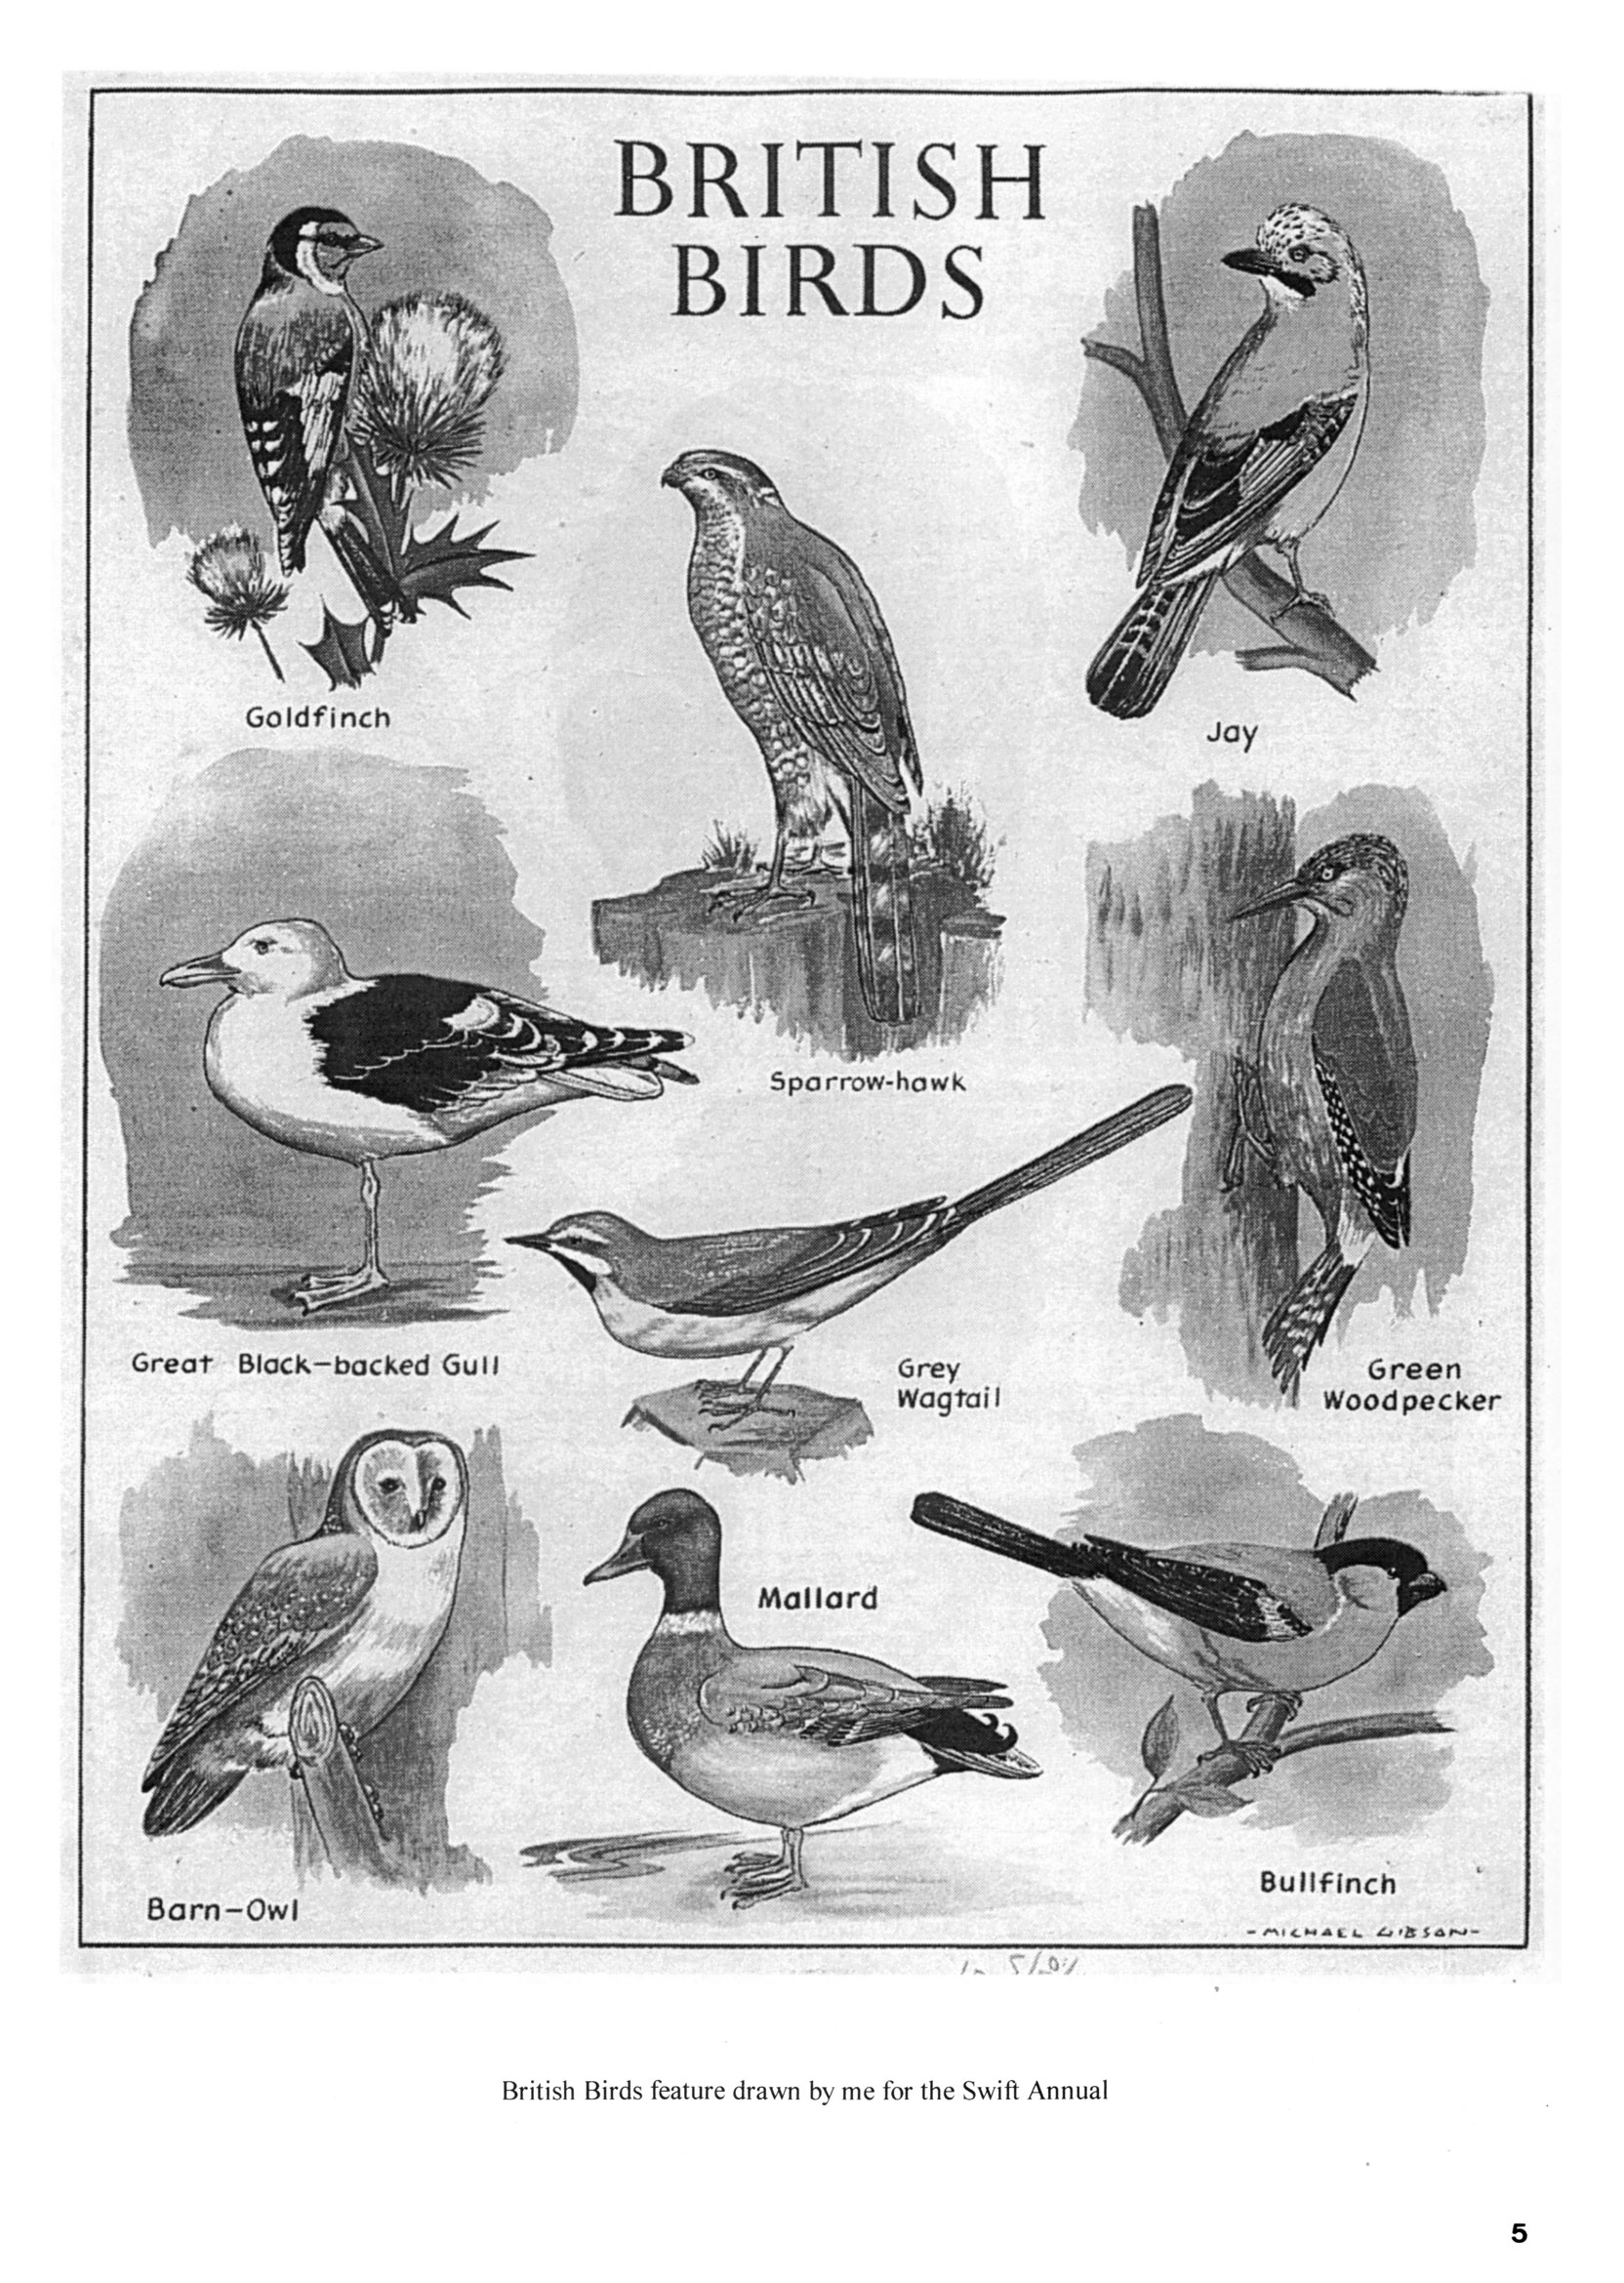 Eagle art editor page 3: British Birds illustration